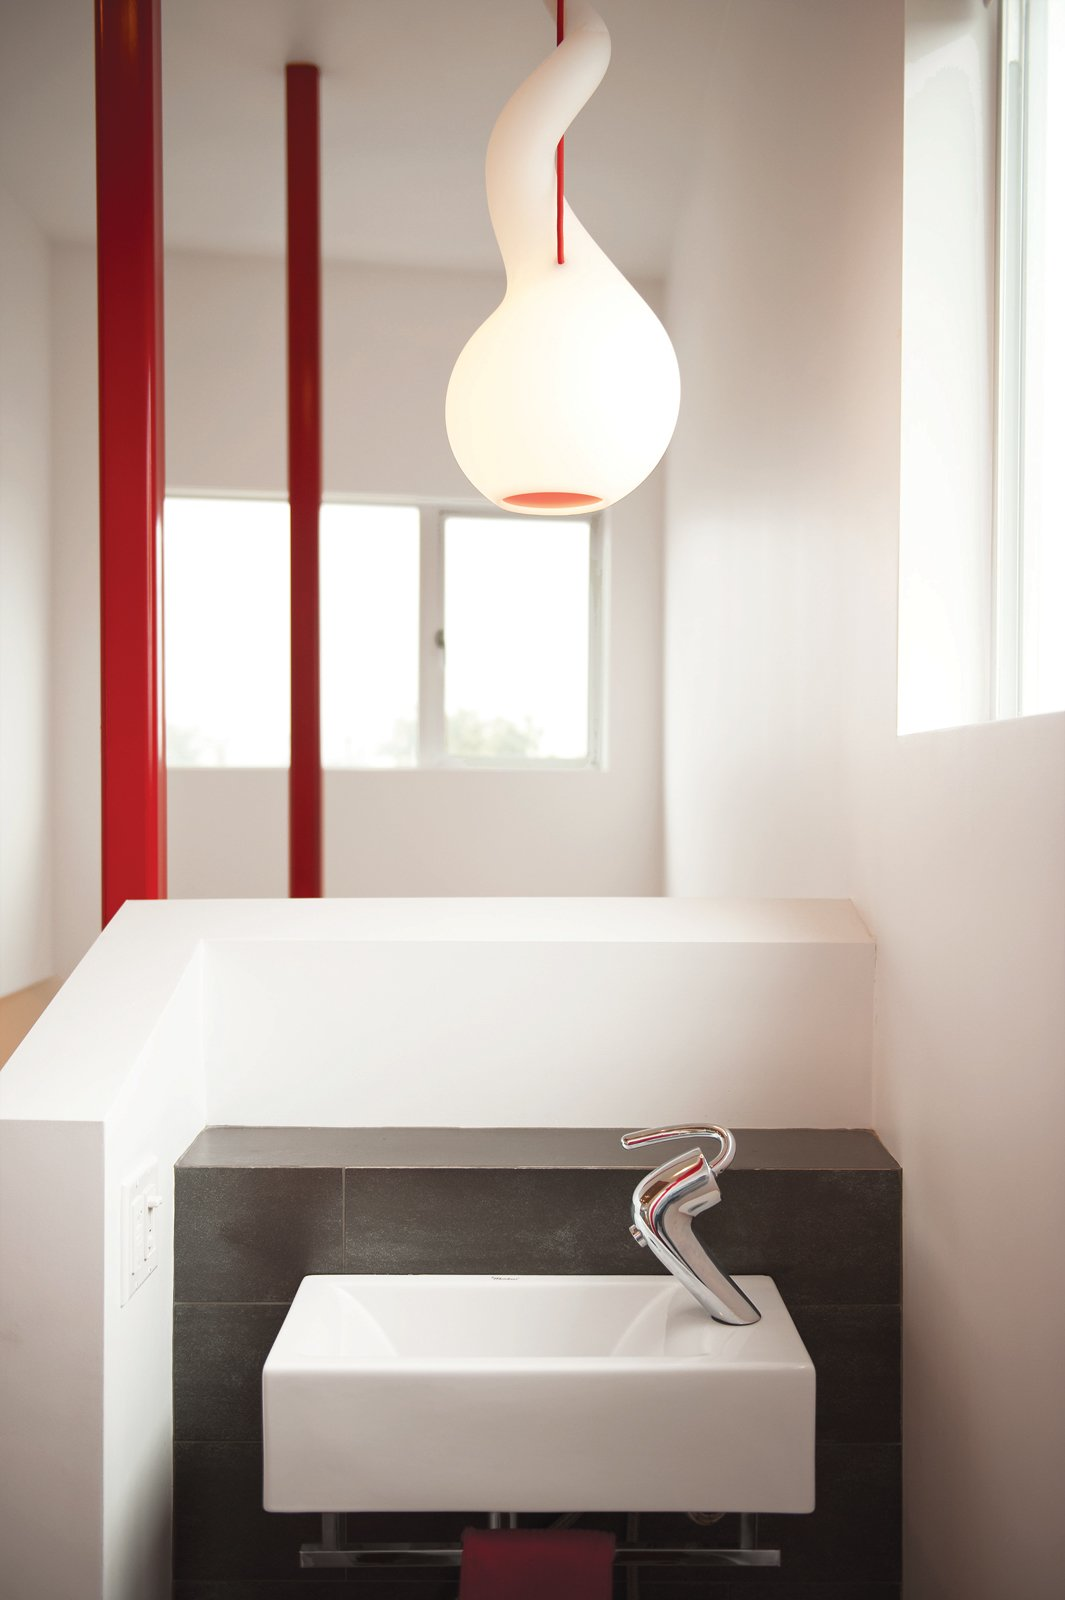 The Alien pendant light with red cord is by Constantin Wortmann for Next Design.  Photo 6 of 13 in 131-Day House